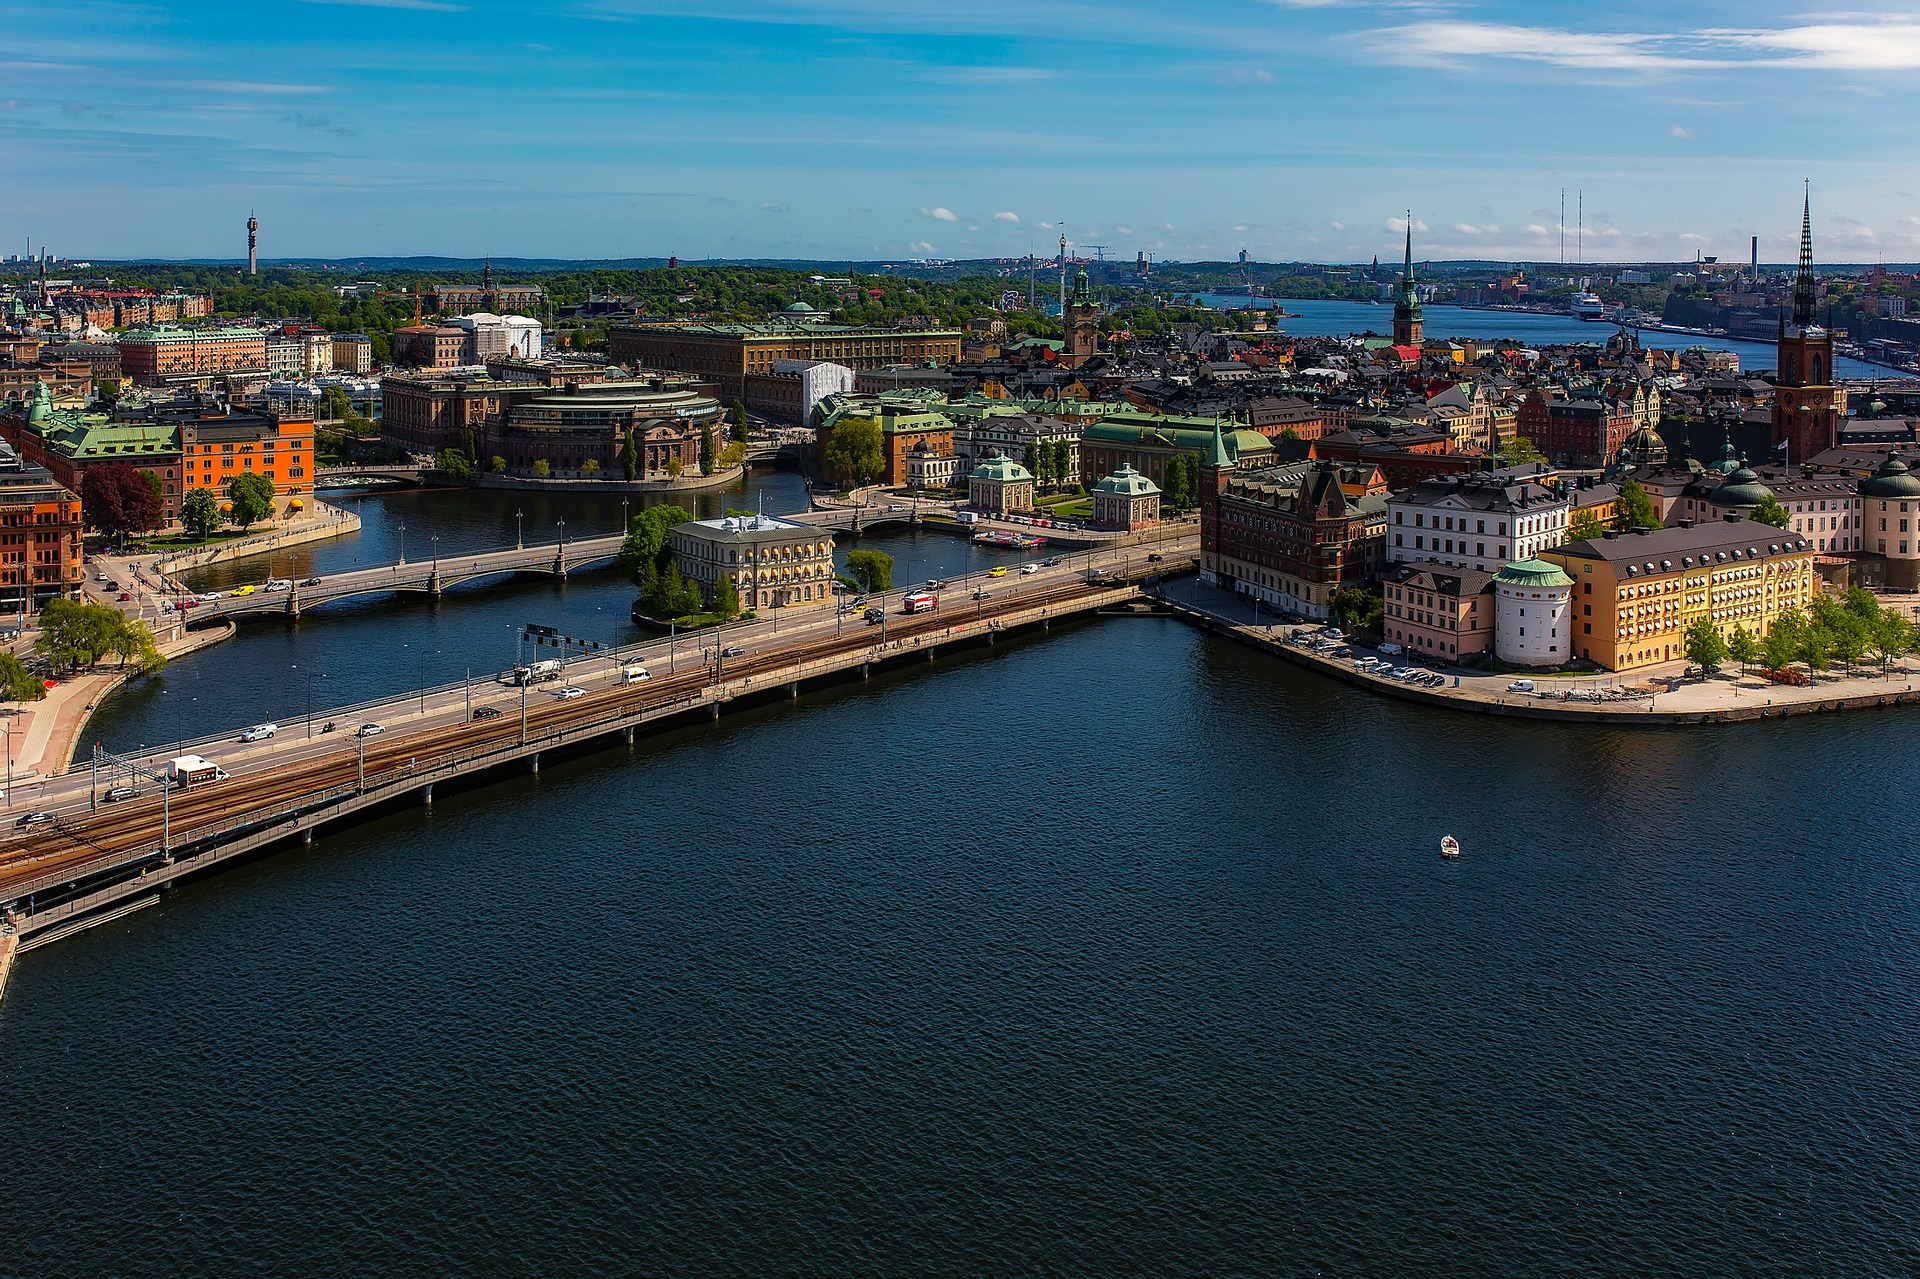 Spend an Amazing Week in Stockholm - How to Spend an Amazing Week in Stockholm